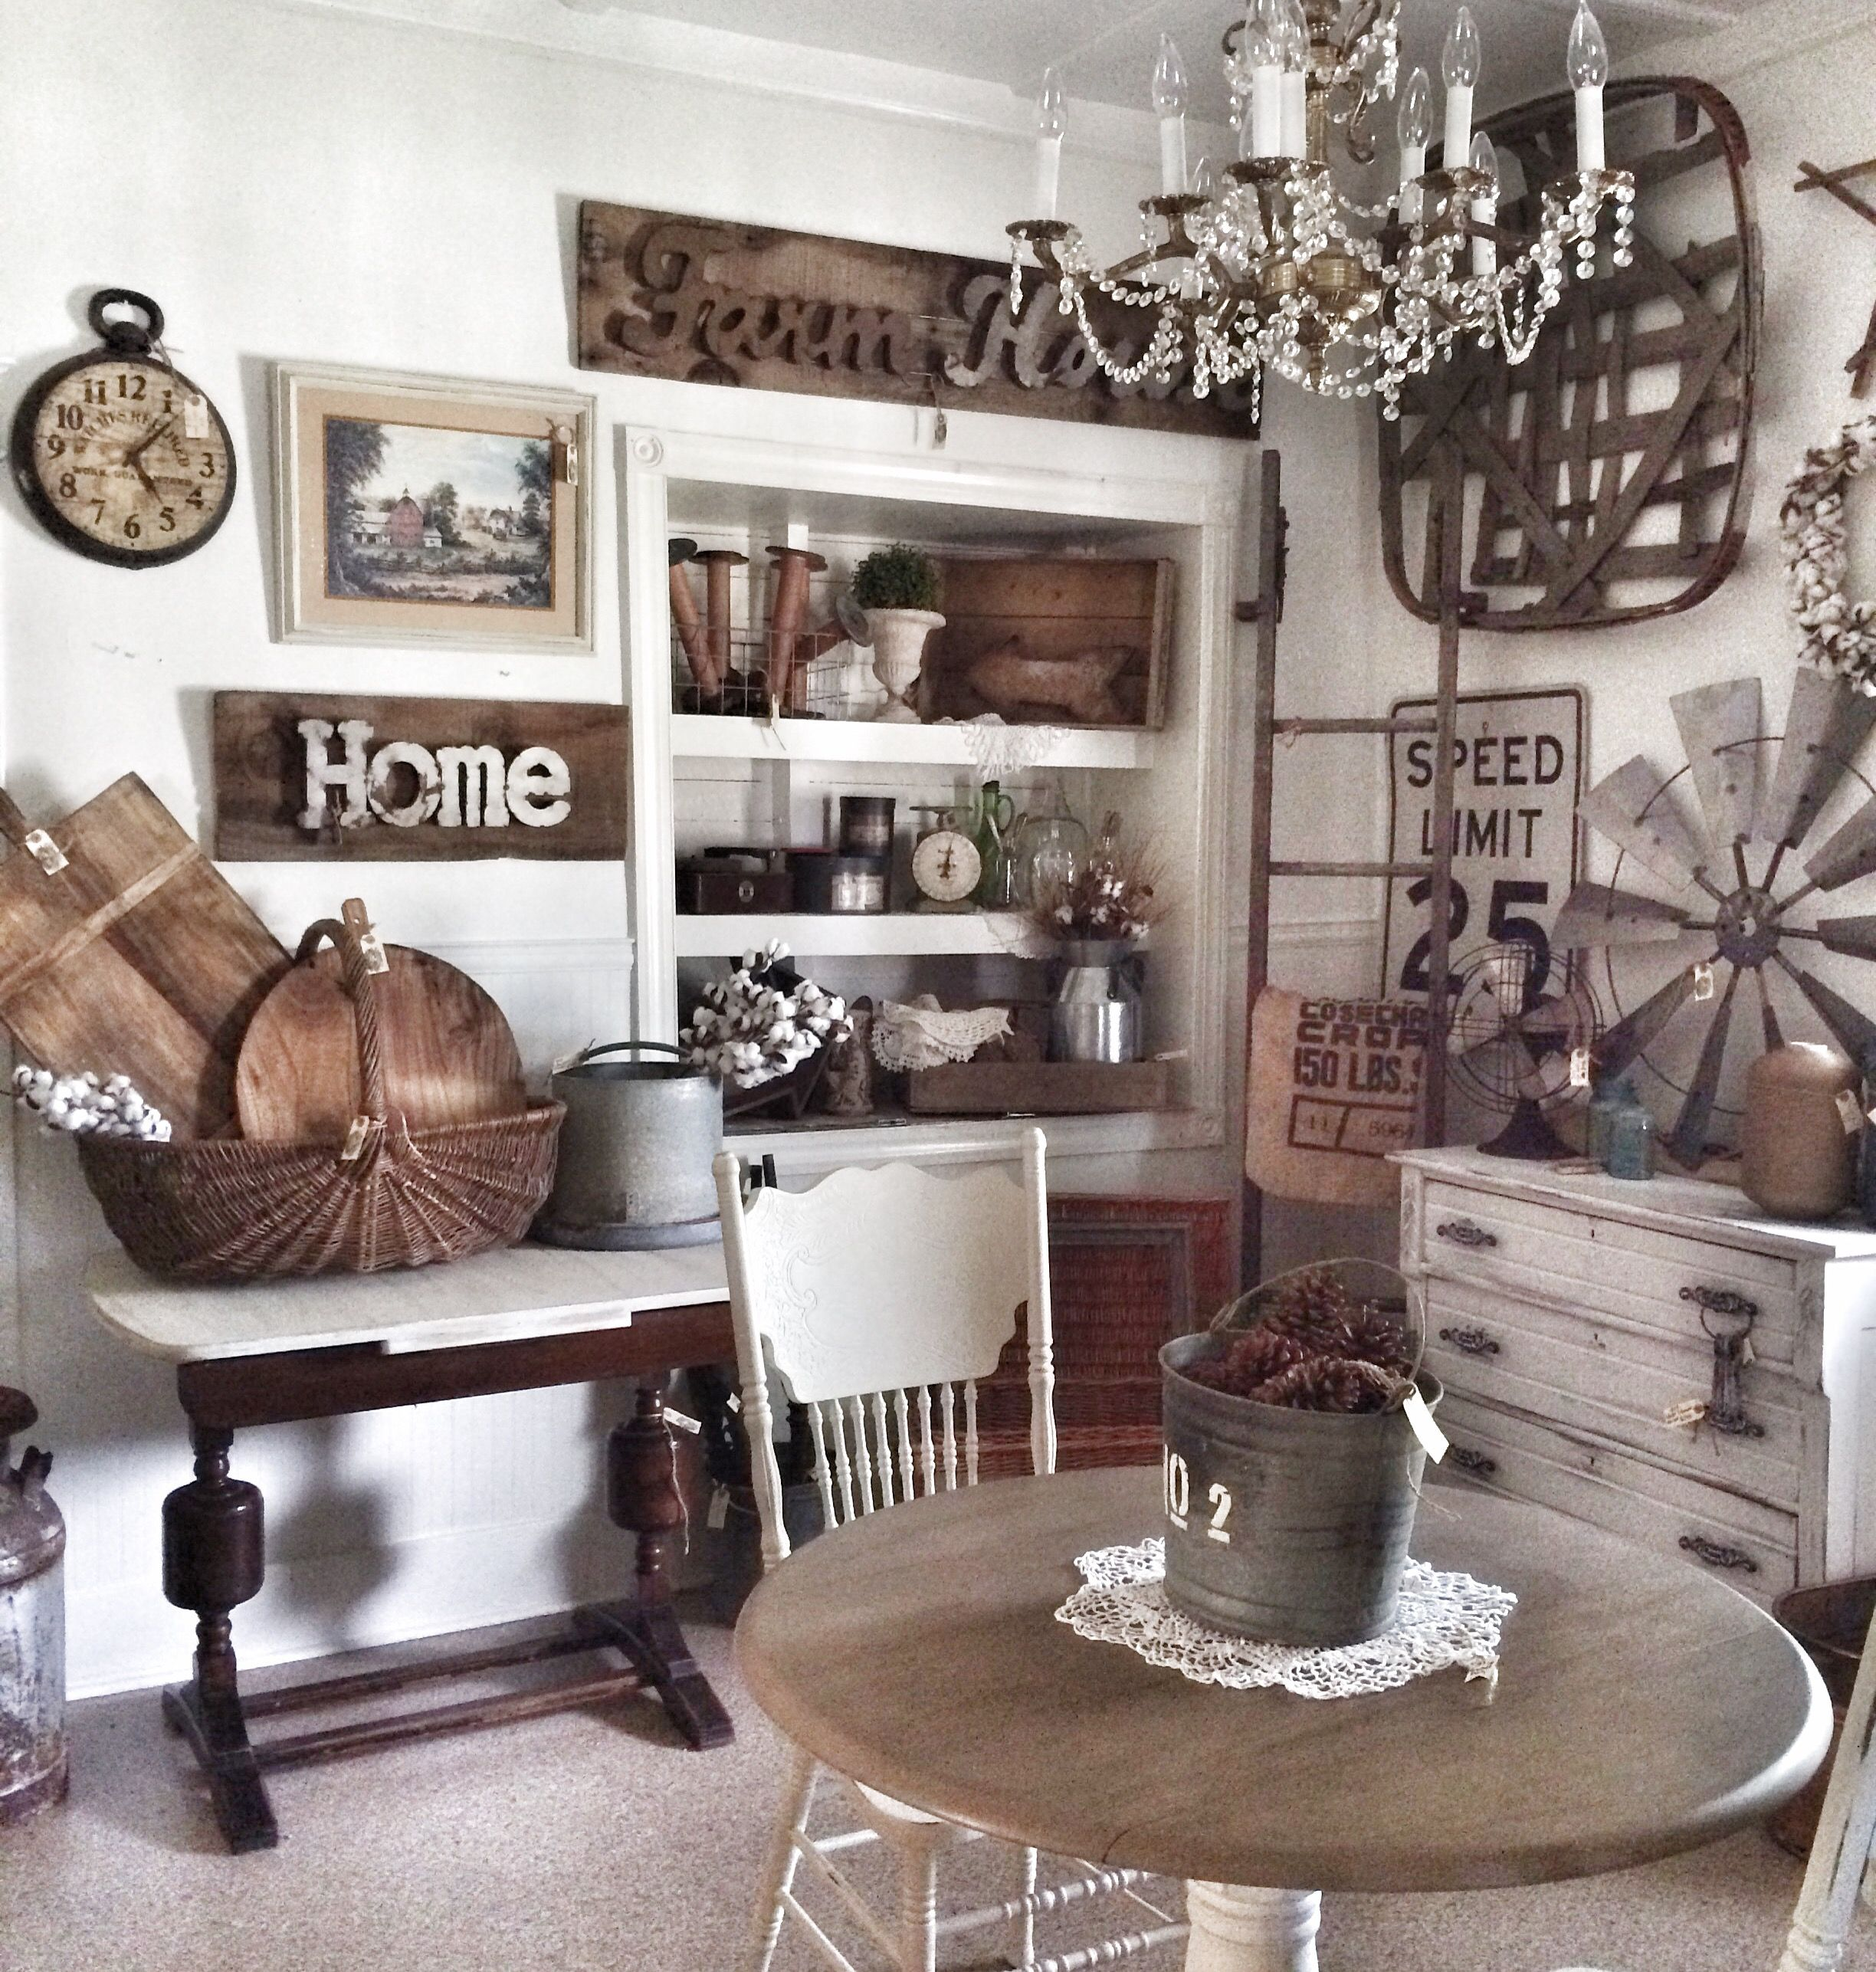 Farmhouse booth ideas or barn sale ideas farmhouse ideas farmhouse style farmhouse decor